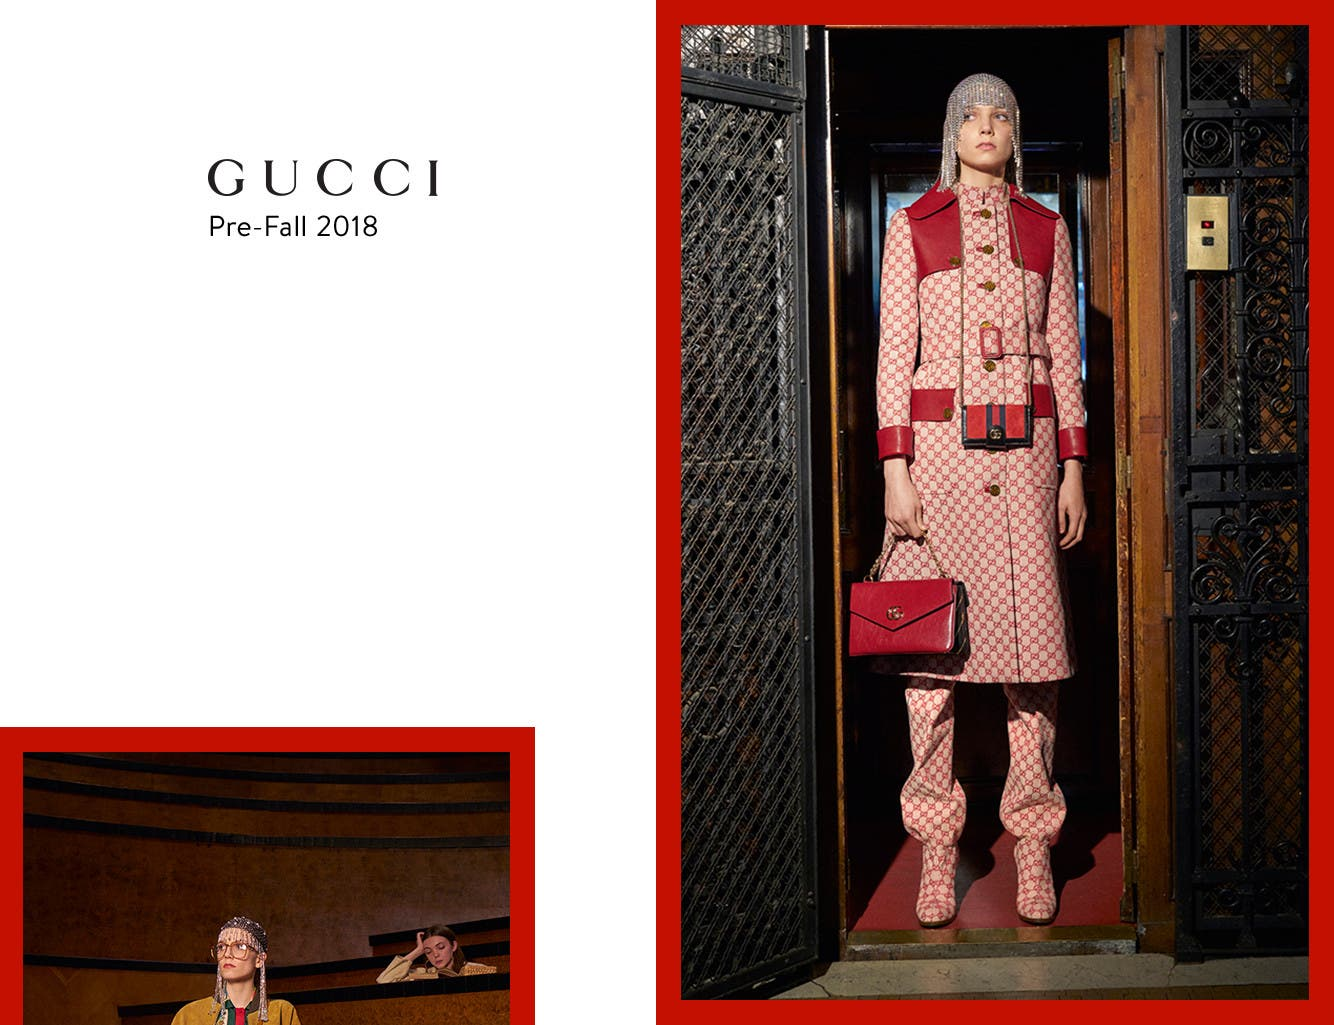 Gucci pre-fall 2018 for men and women.